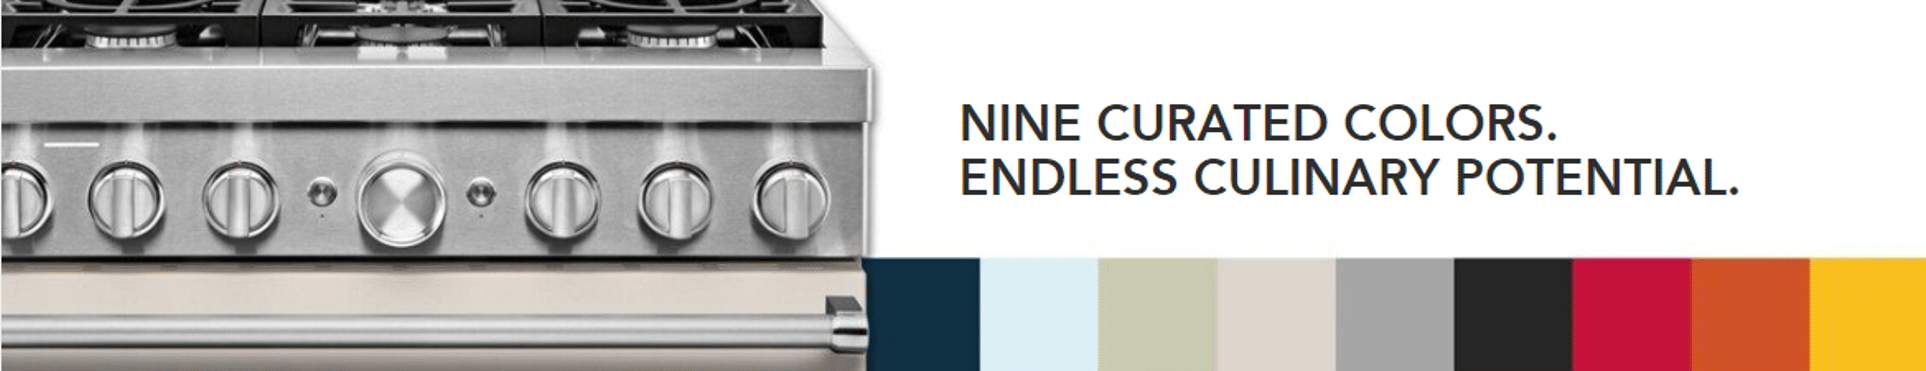 Flavor meets color   Kitchenaid Ranges come in nine colors to express yourself in a whole new way   Visit Capital Distributing, Dallas TX